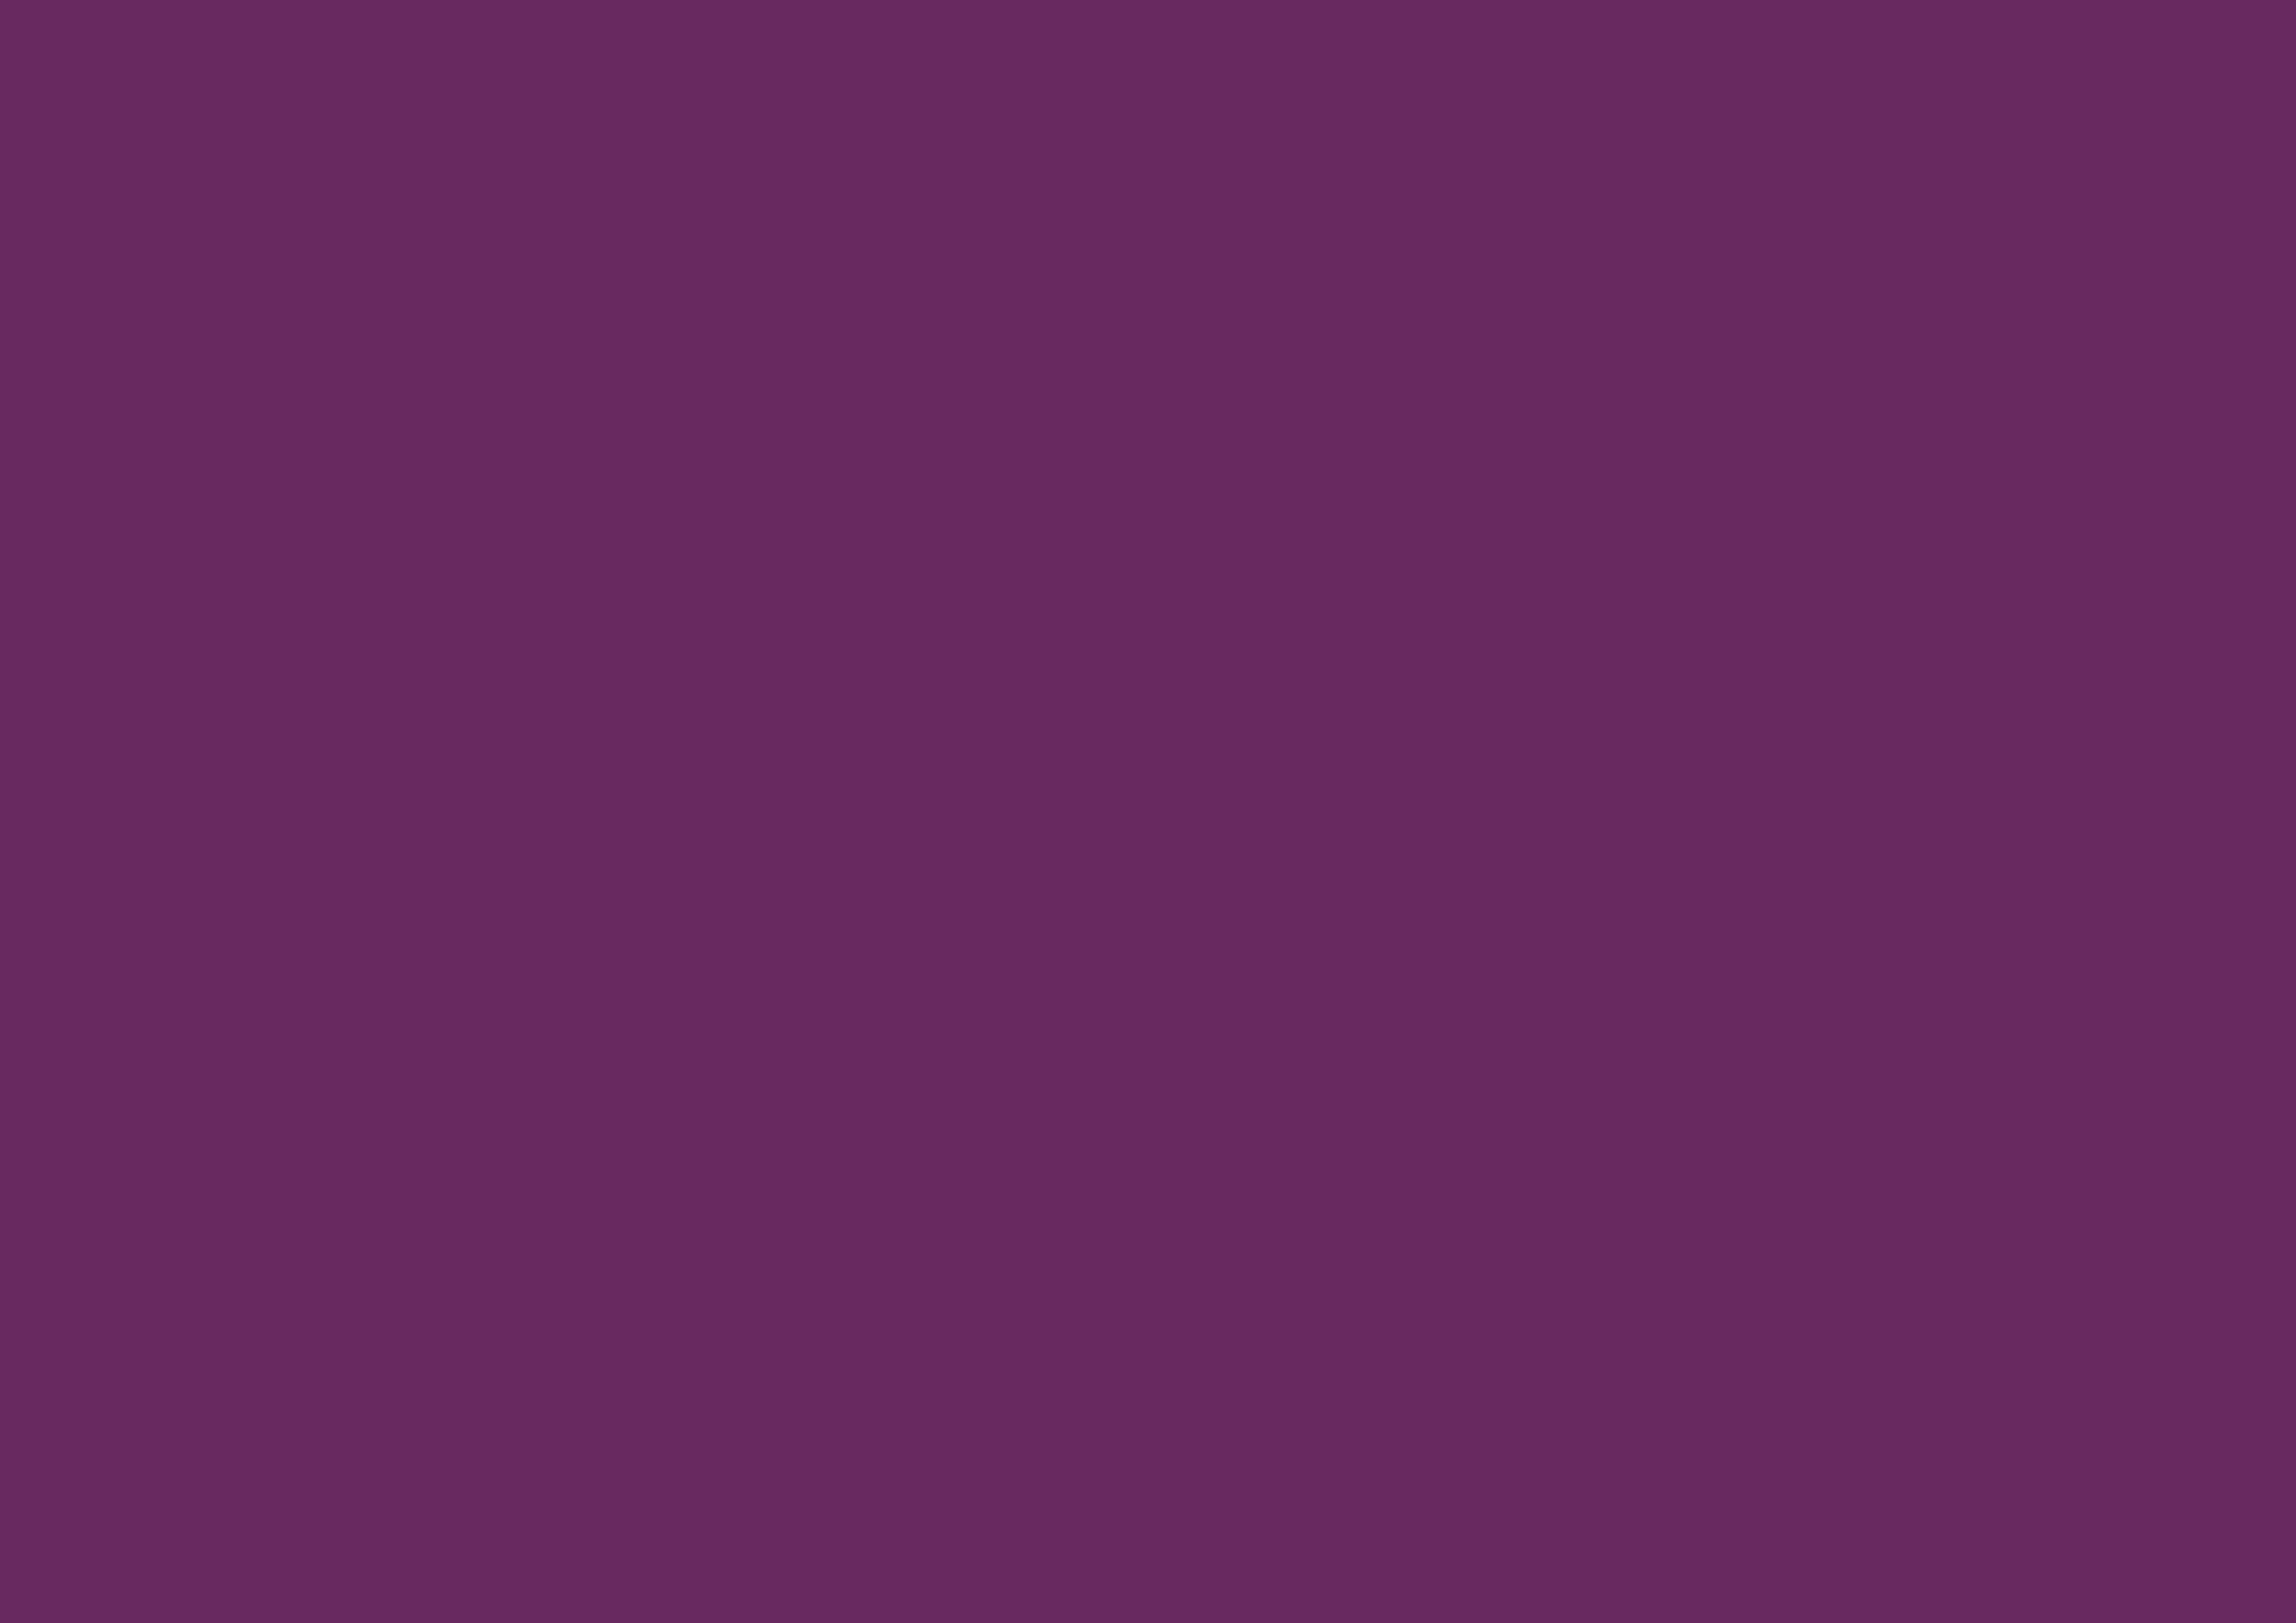 3508x2480 Palatinate Purple Solid Color Background